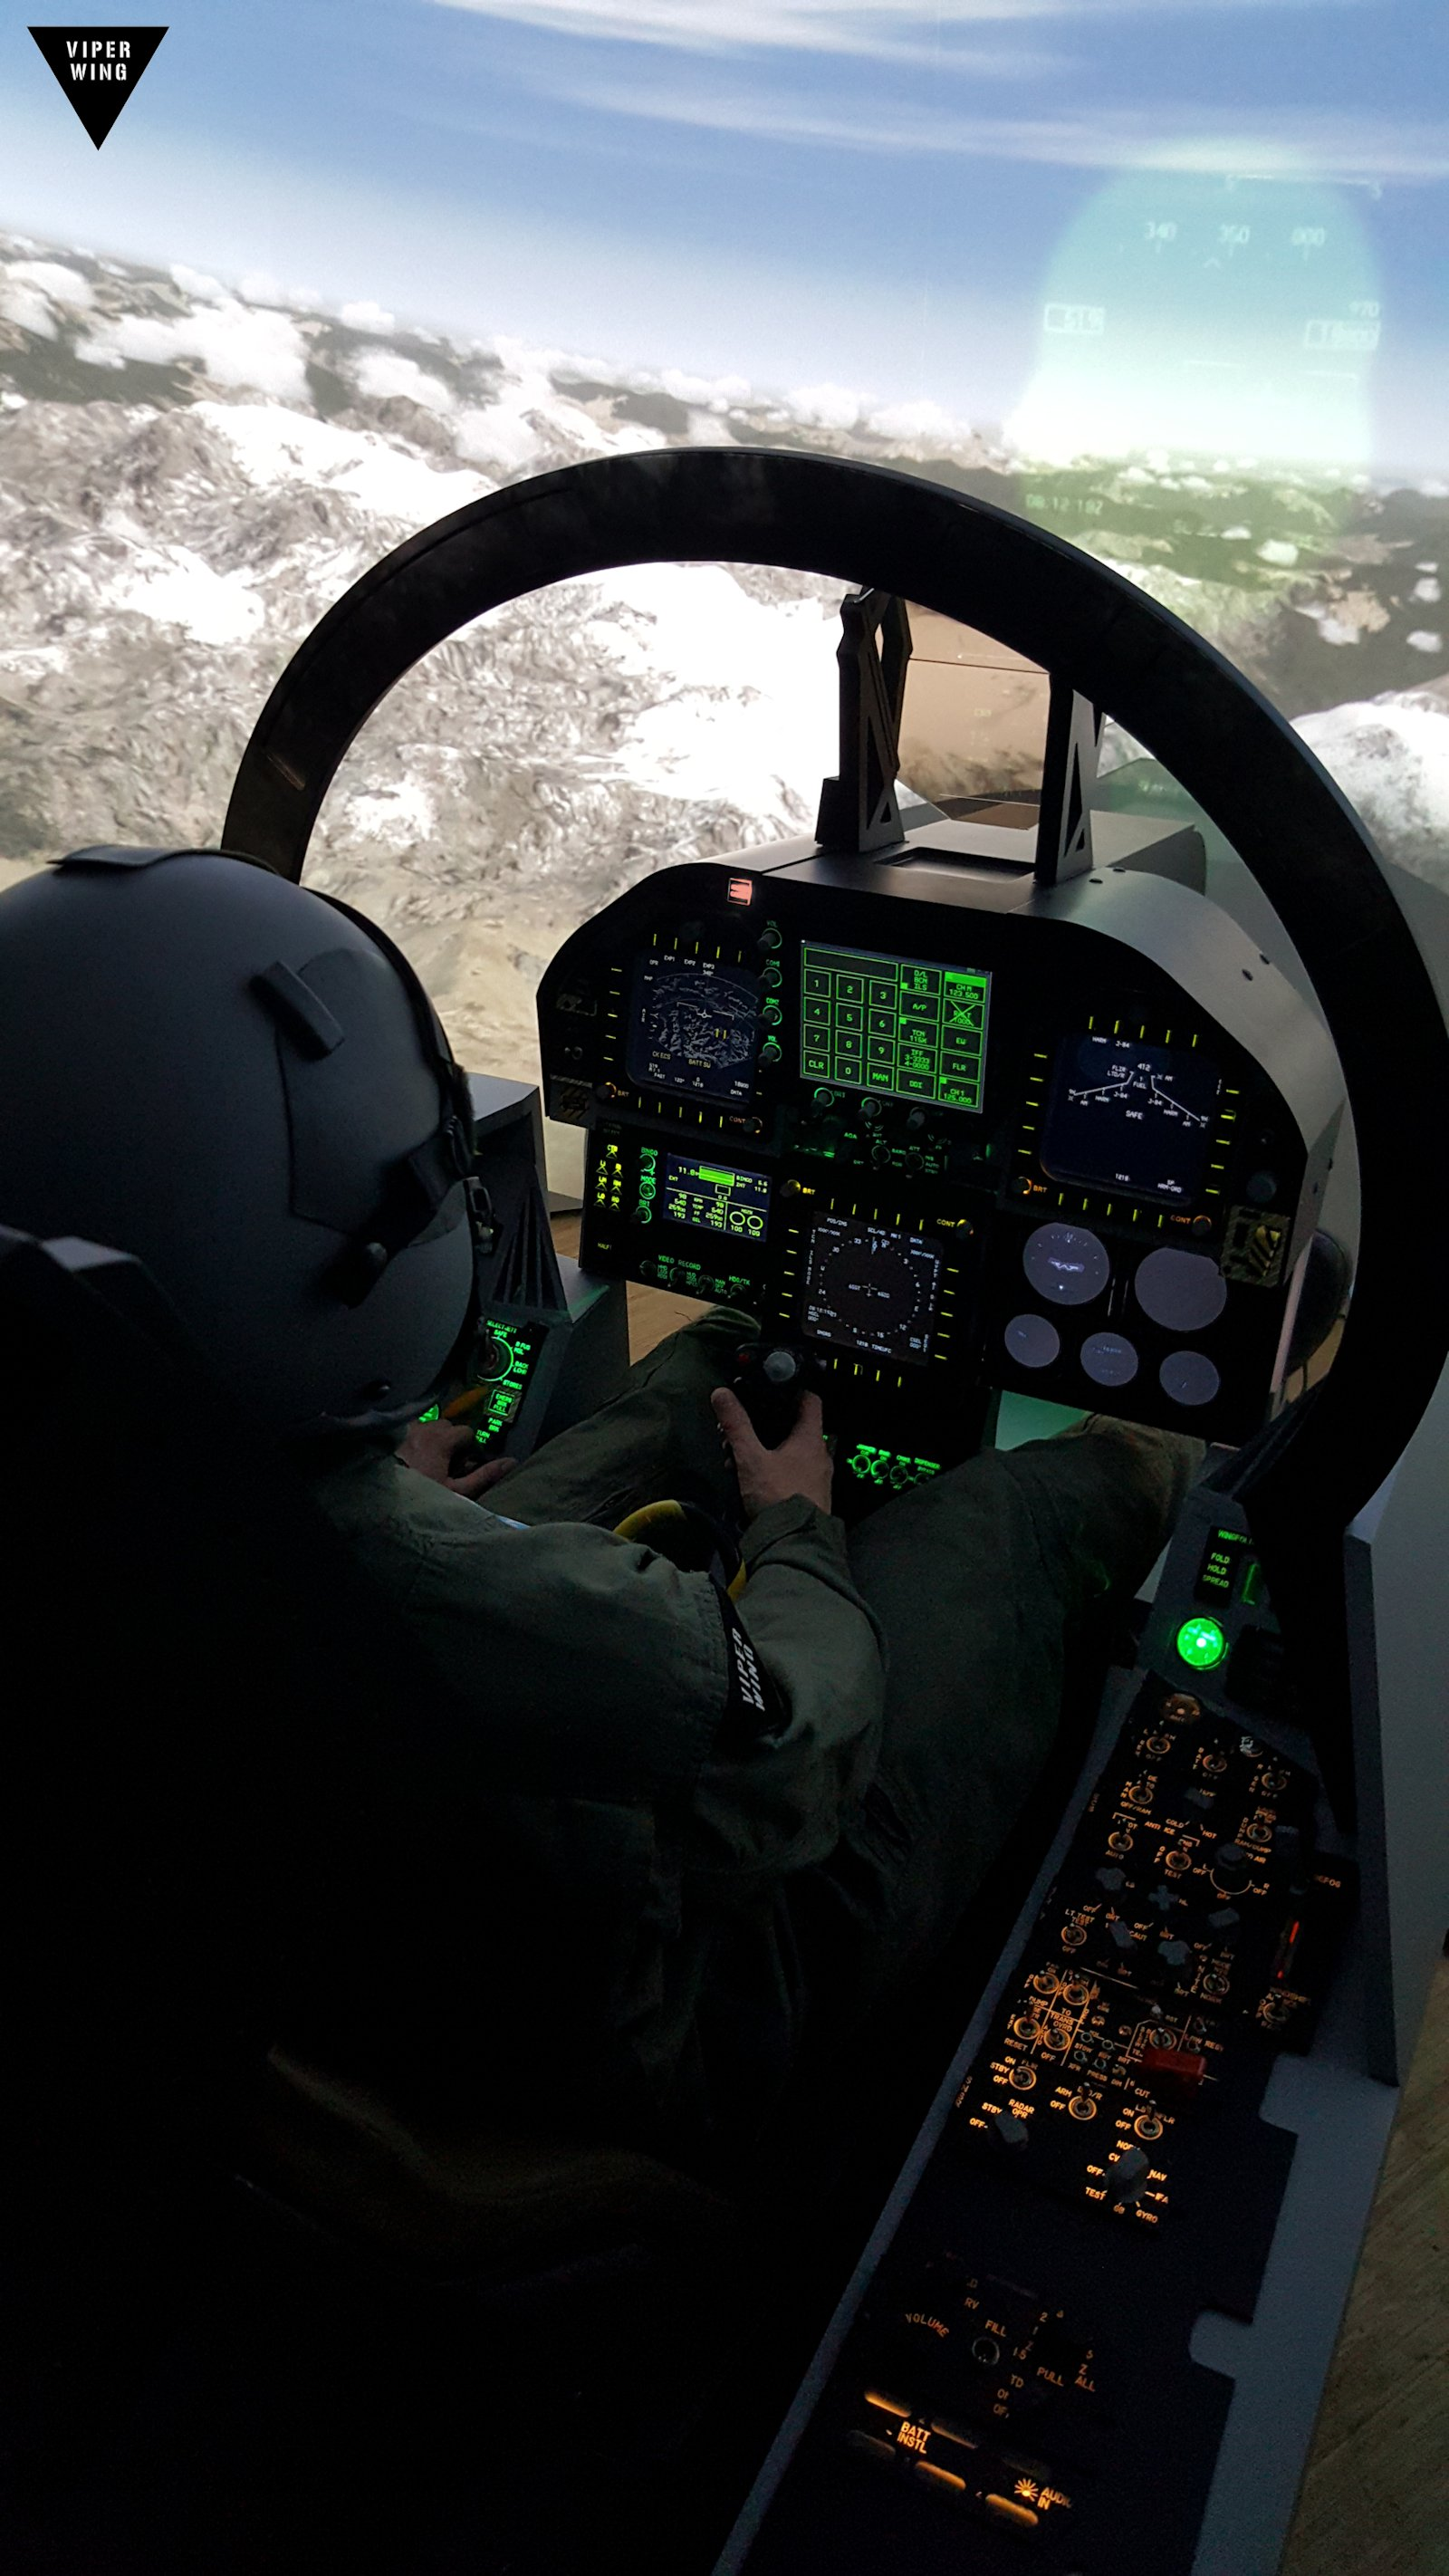 F-18, F/A-18 simulator fighter jet cockpit - all physical